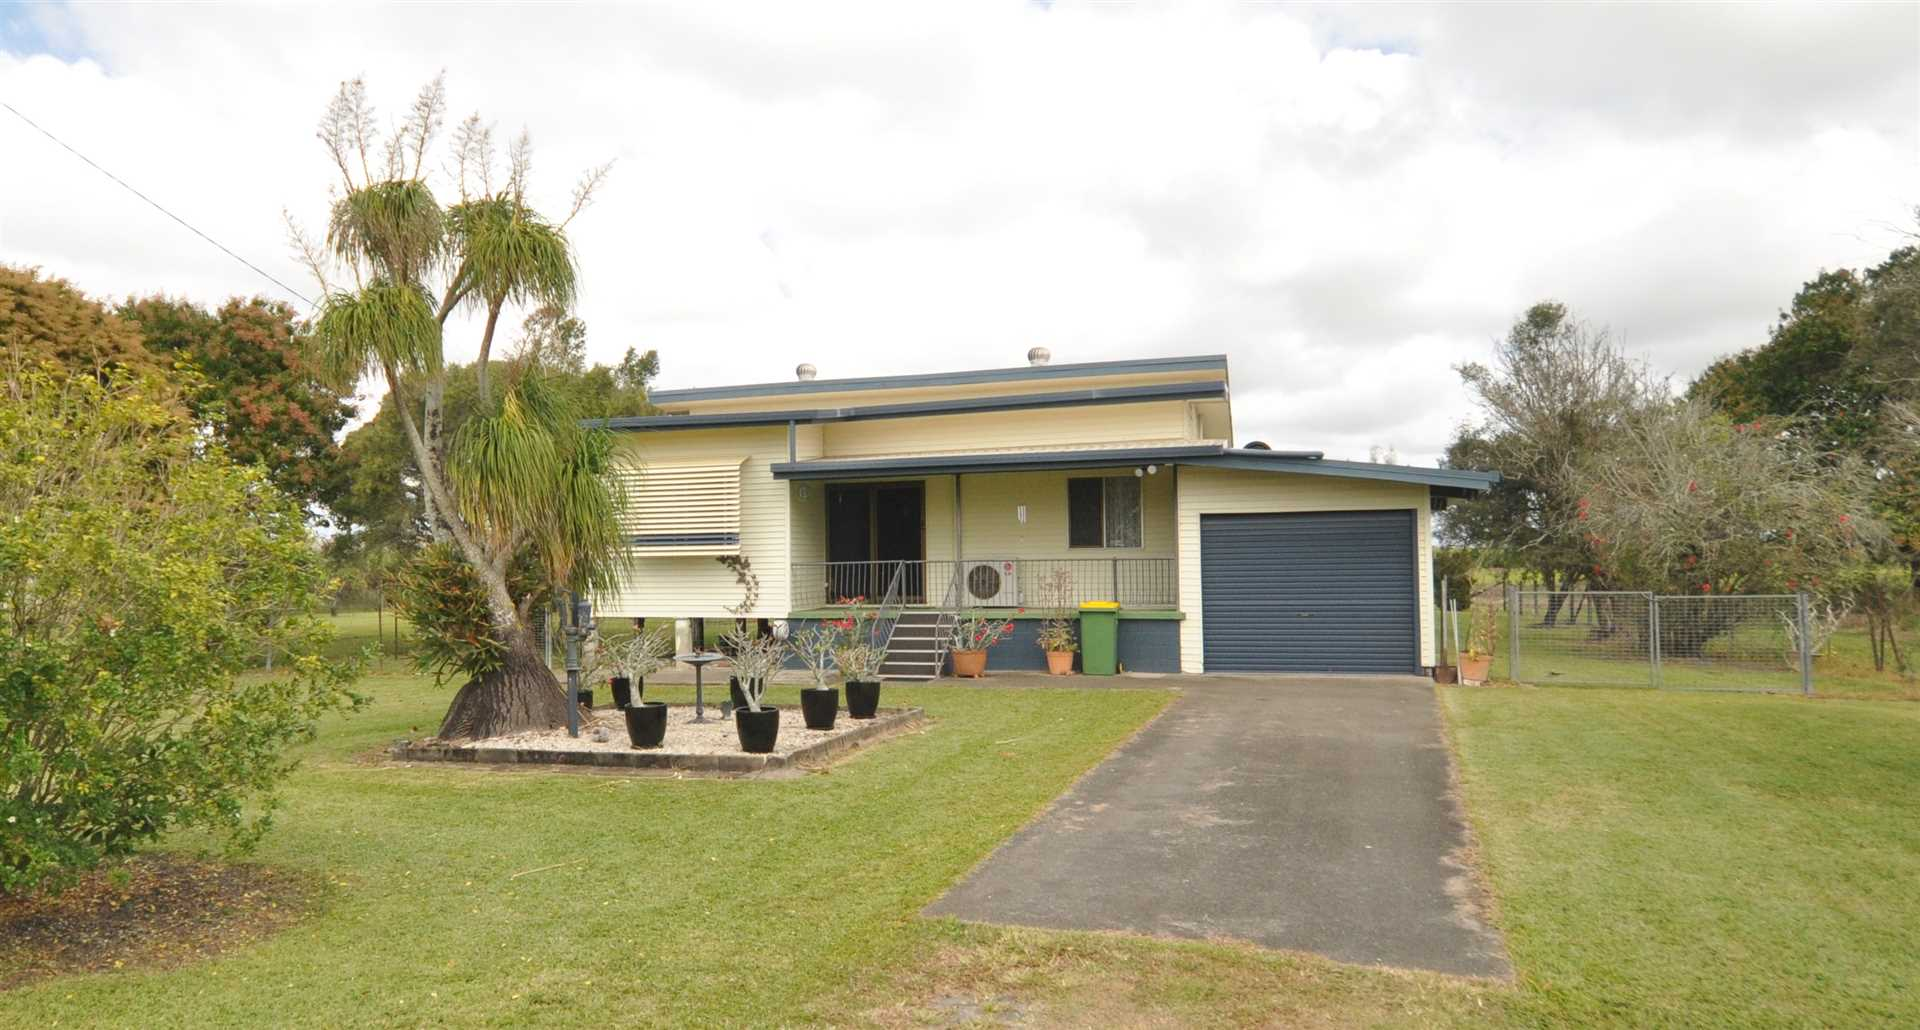 Neat Family Home on Acreage - Quiet Road Close to Town